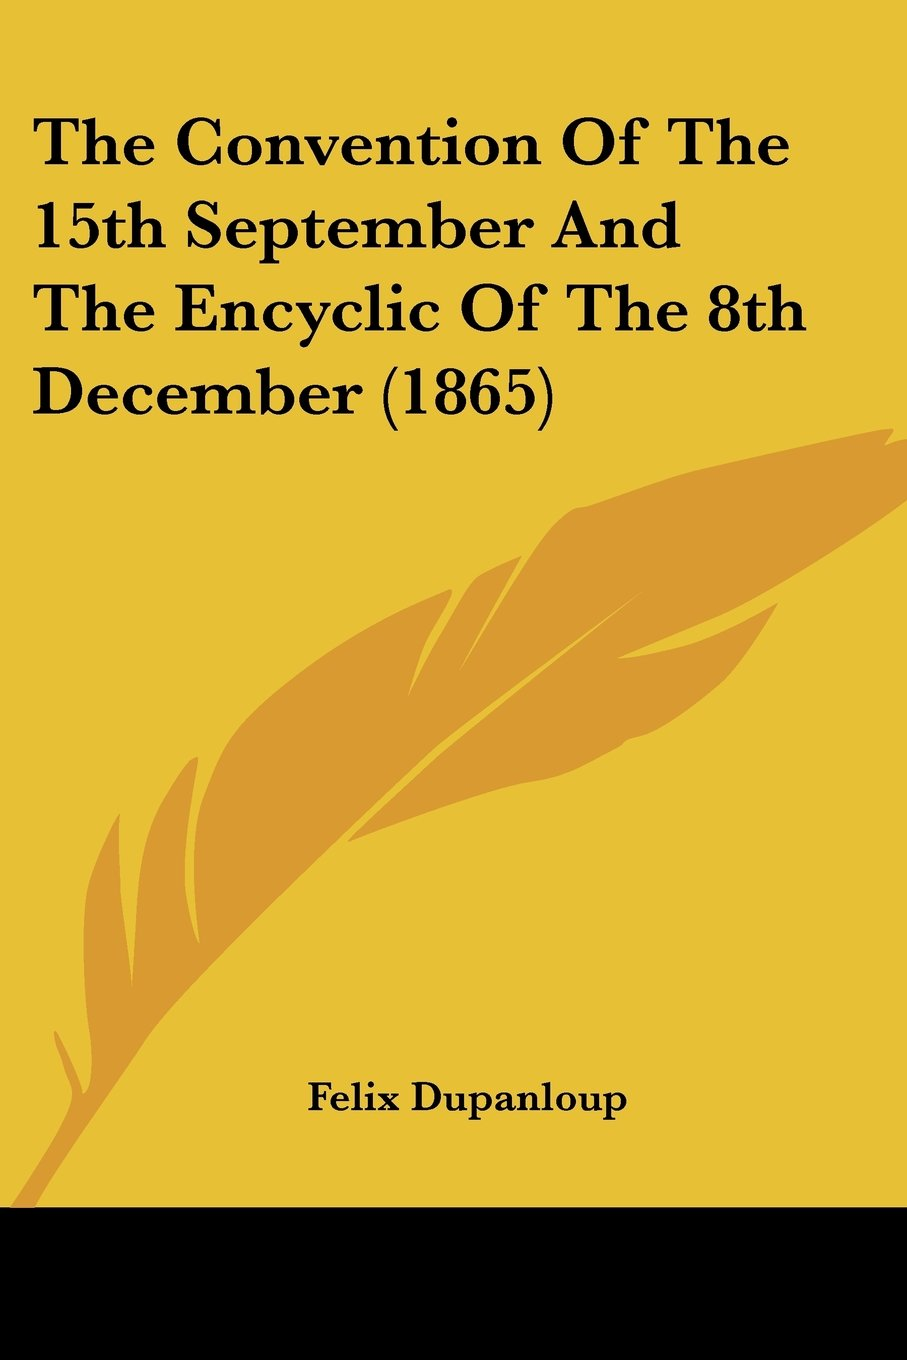 The Convention of the 15th September and the Encyclic of the 8th December (1865) ebook